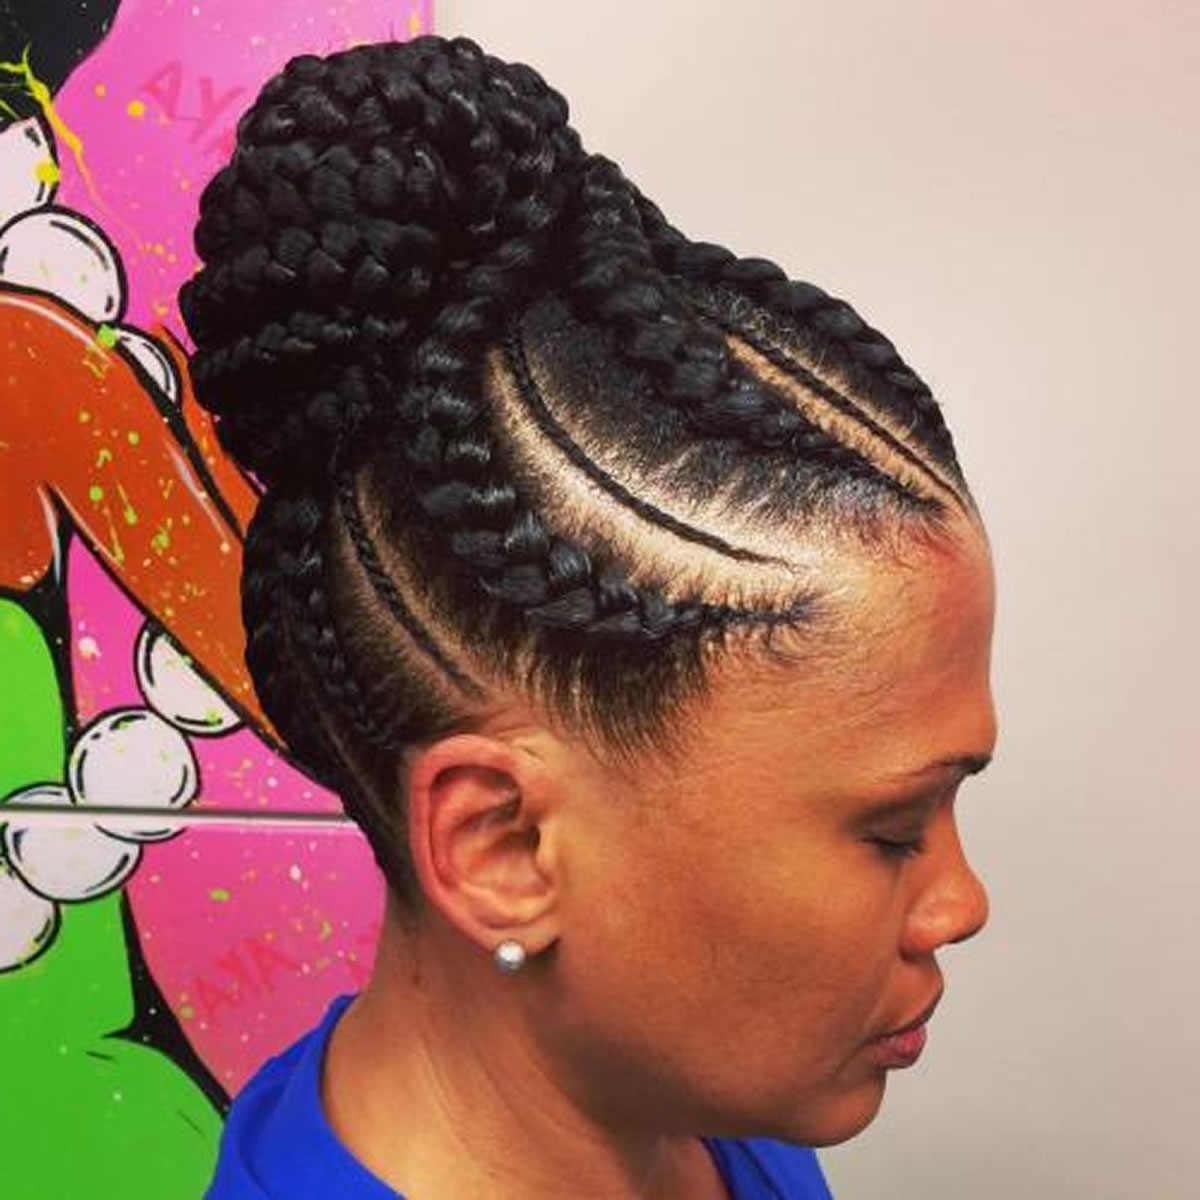 Fashionable Braided Hairstyles For Black Woman Regarding 20 Best African American Braided Hairstyles For Women 2017 (View 8 of 15)